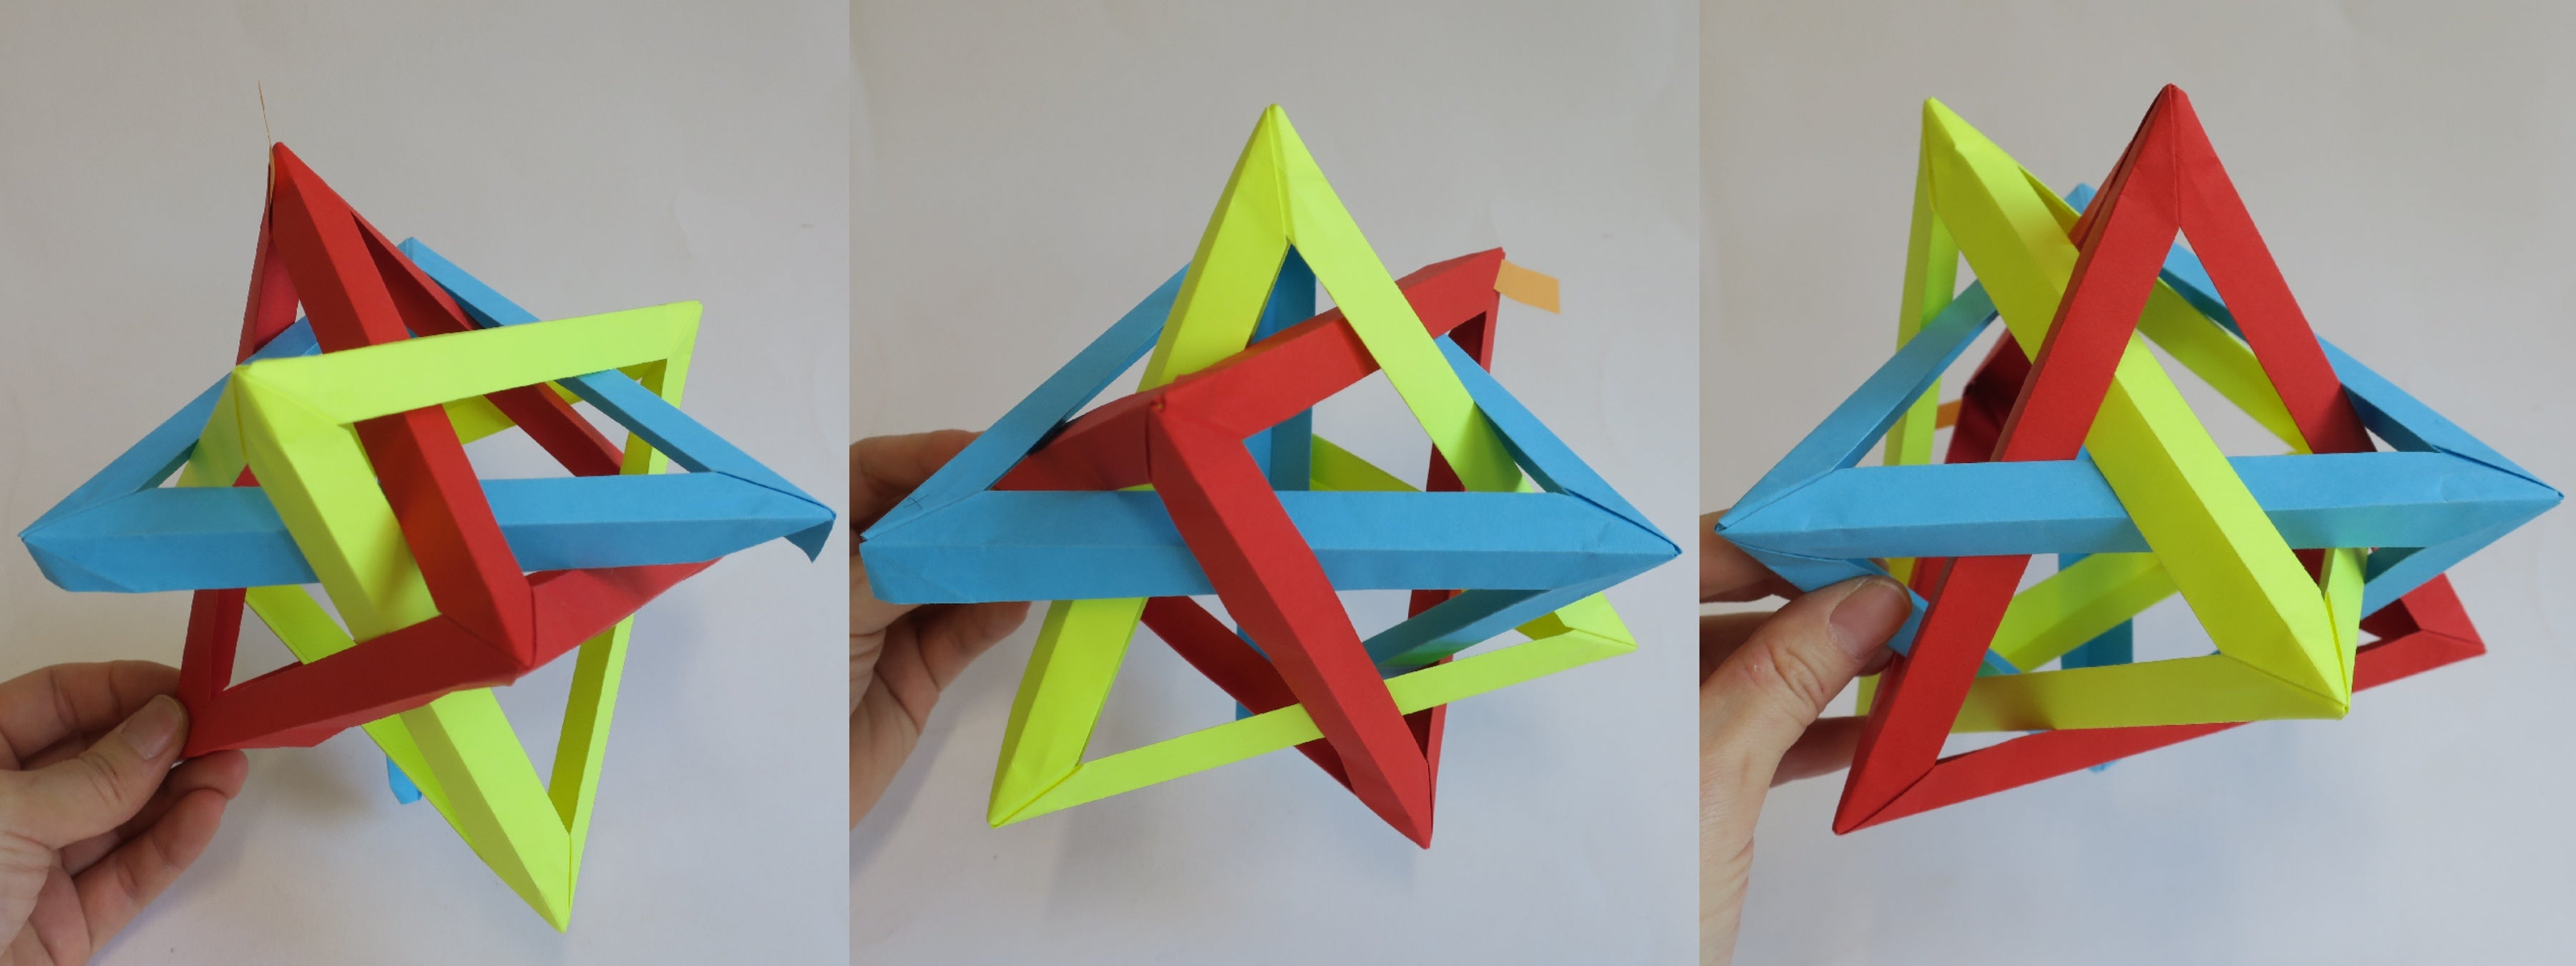 Origami 5 Intersecting Tetrahedra Tutorial